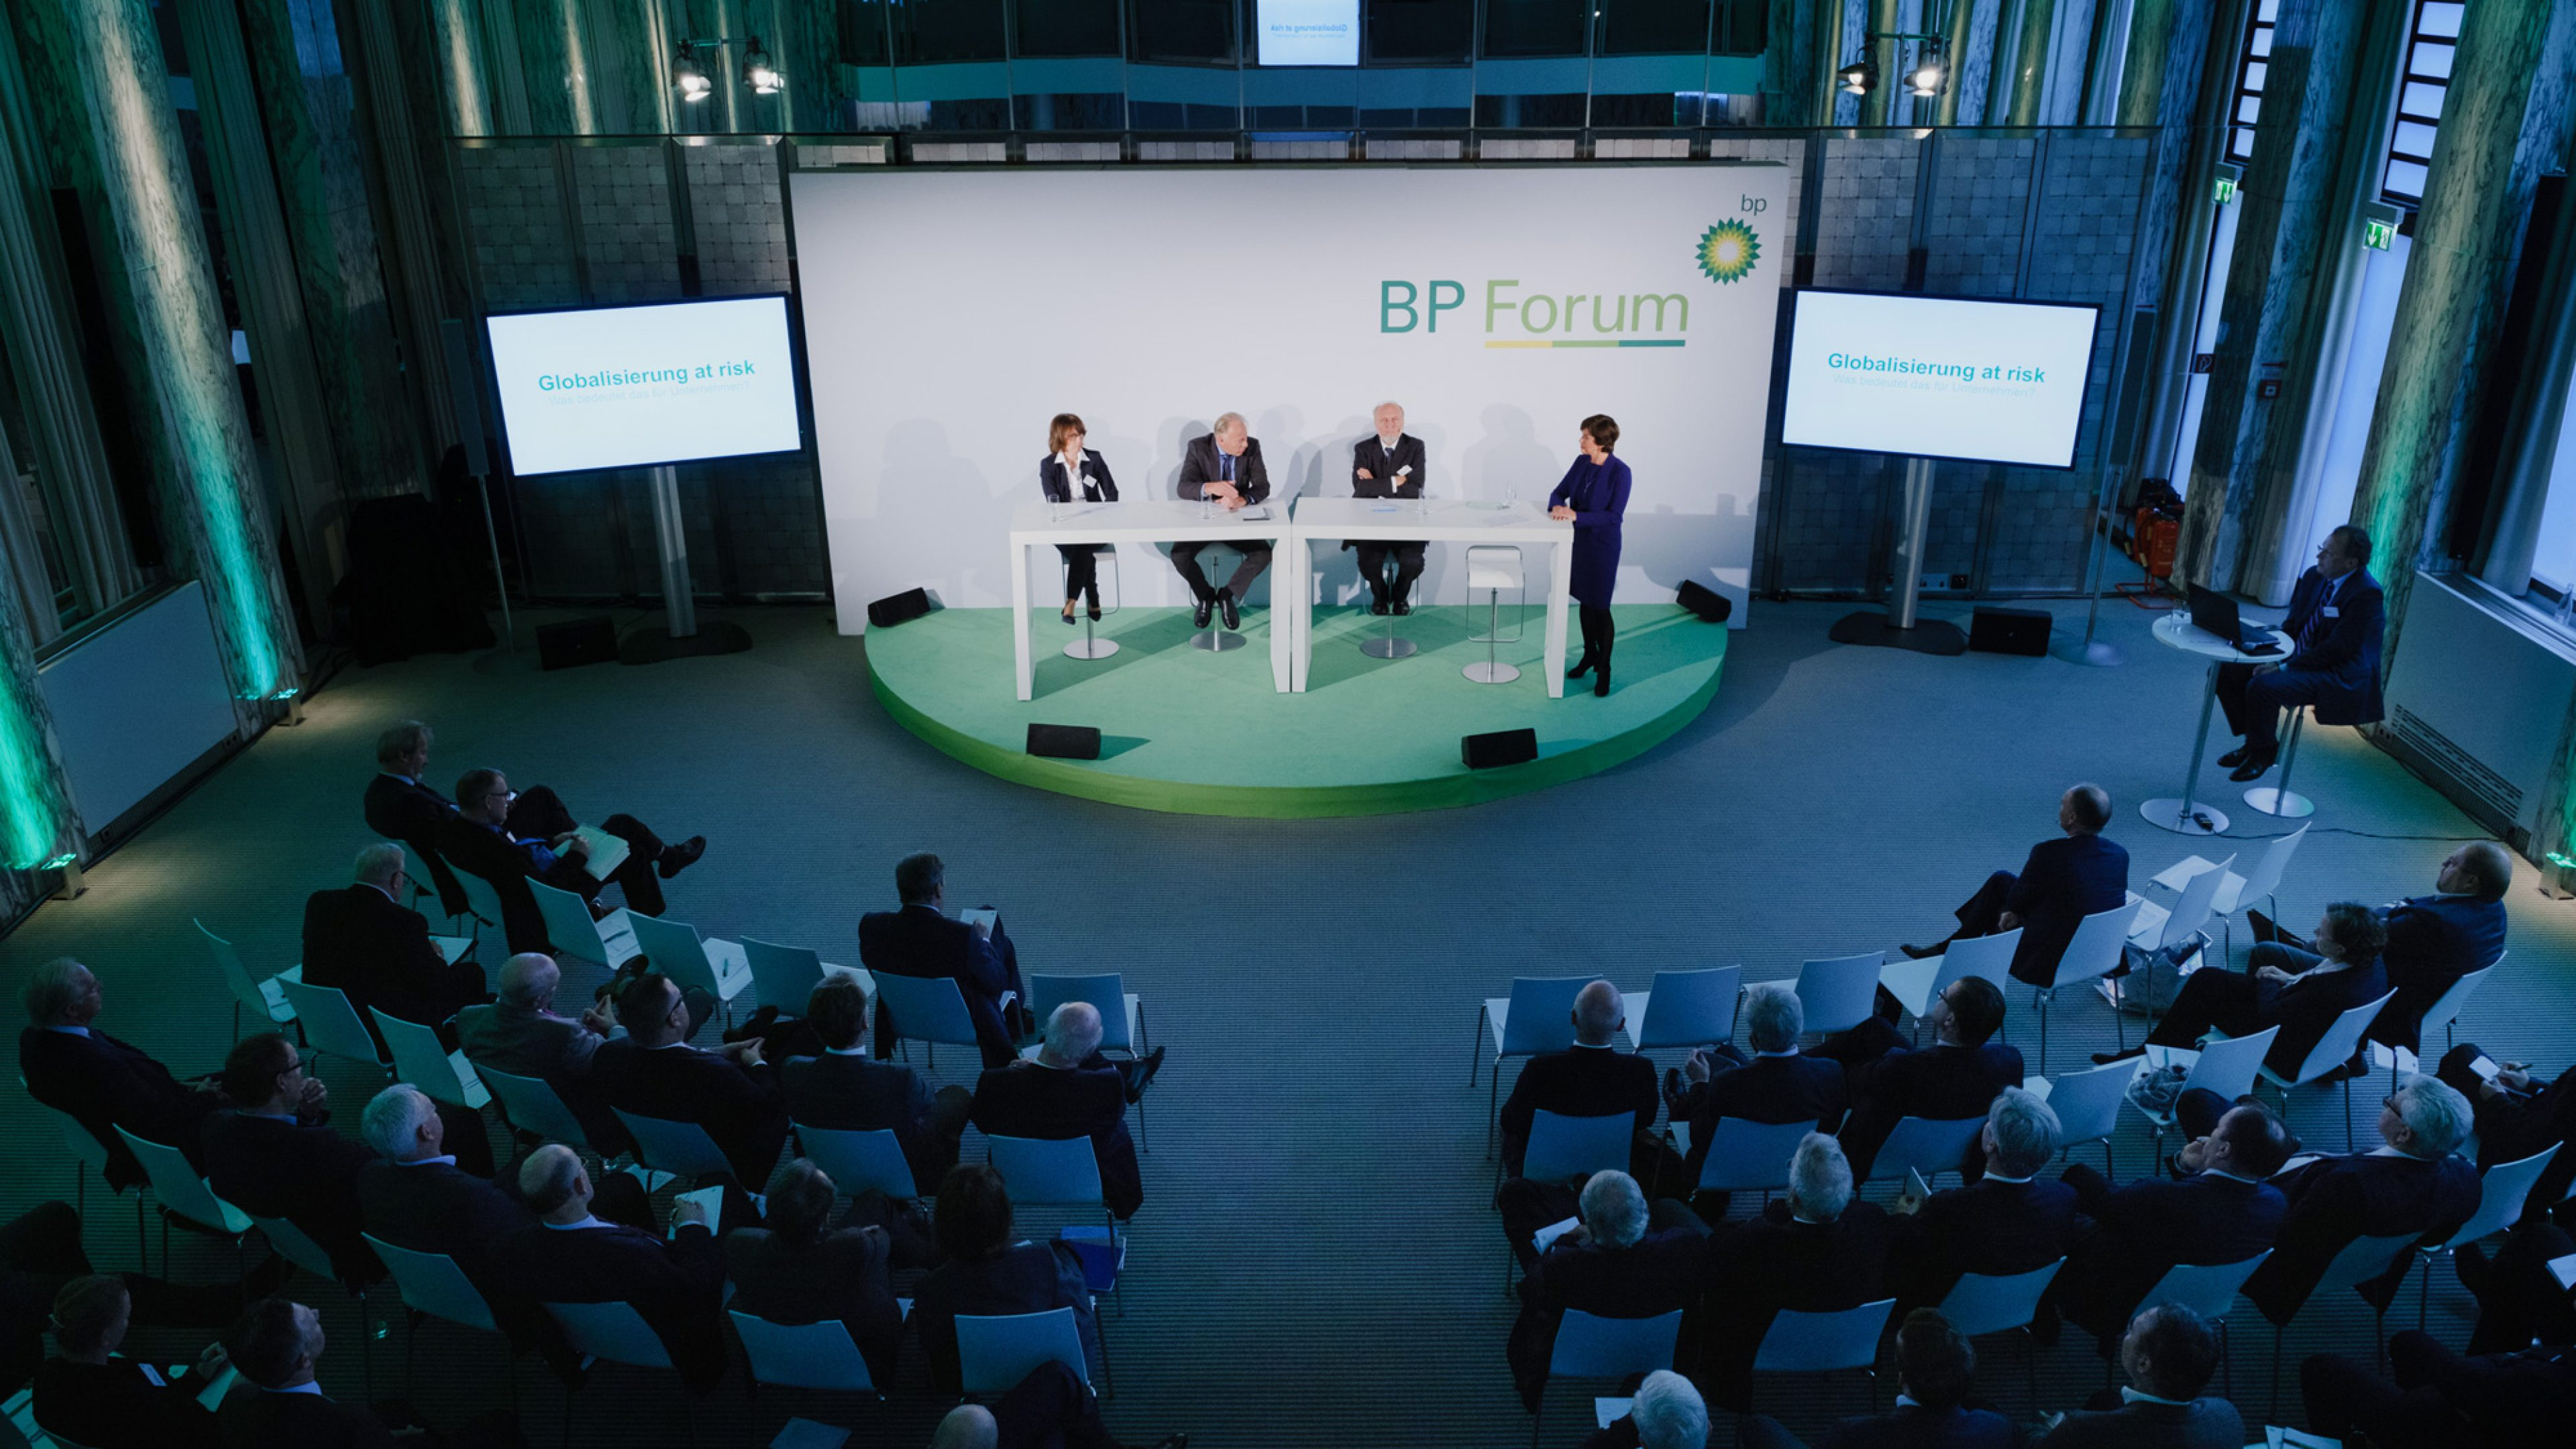 BP Forum: Globalisierung at risk